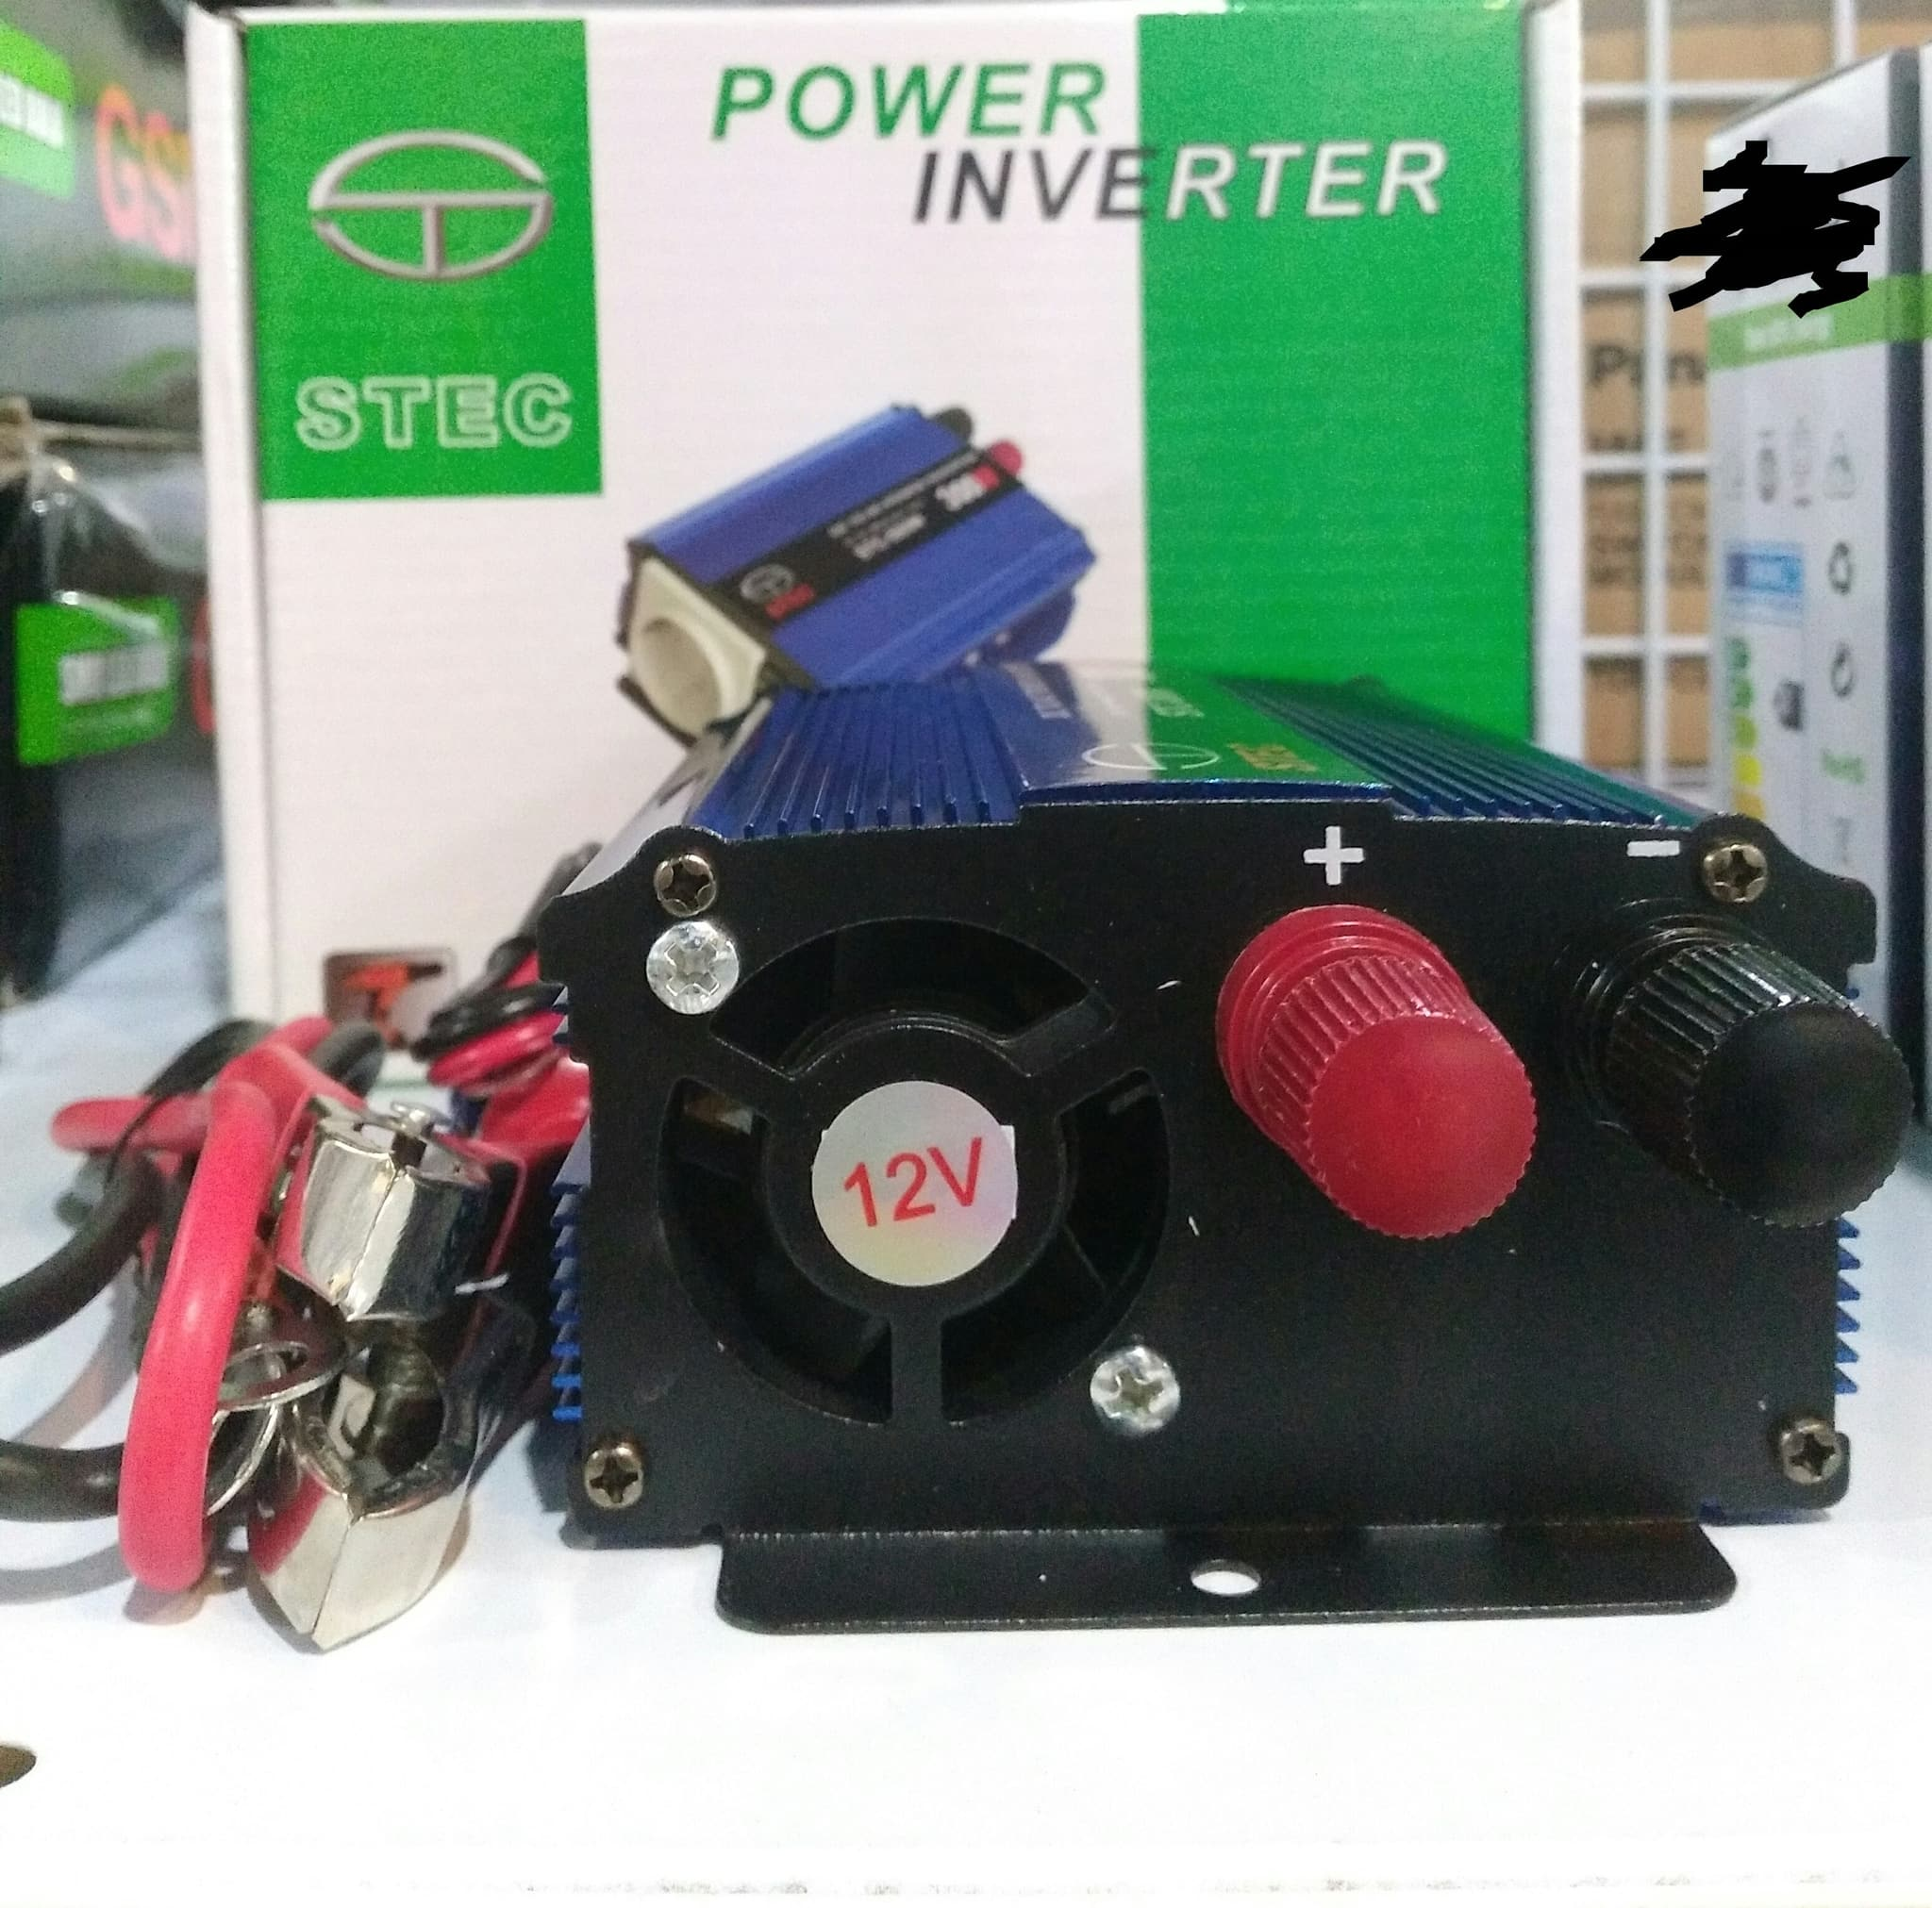 Power Inverter DC to AC 300W / 12V to 220V 300W STEC